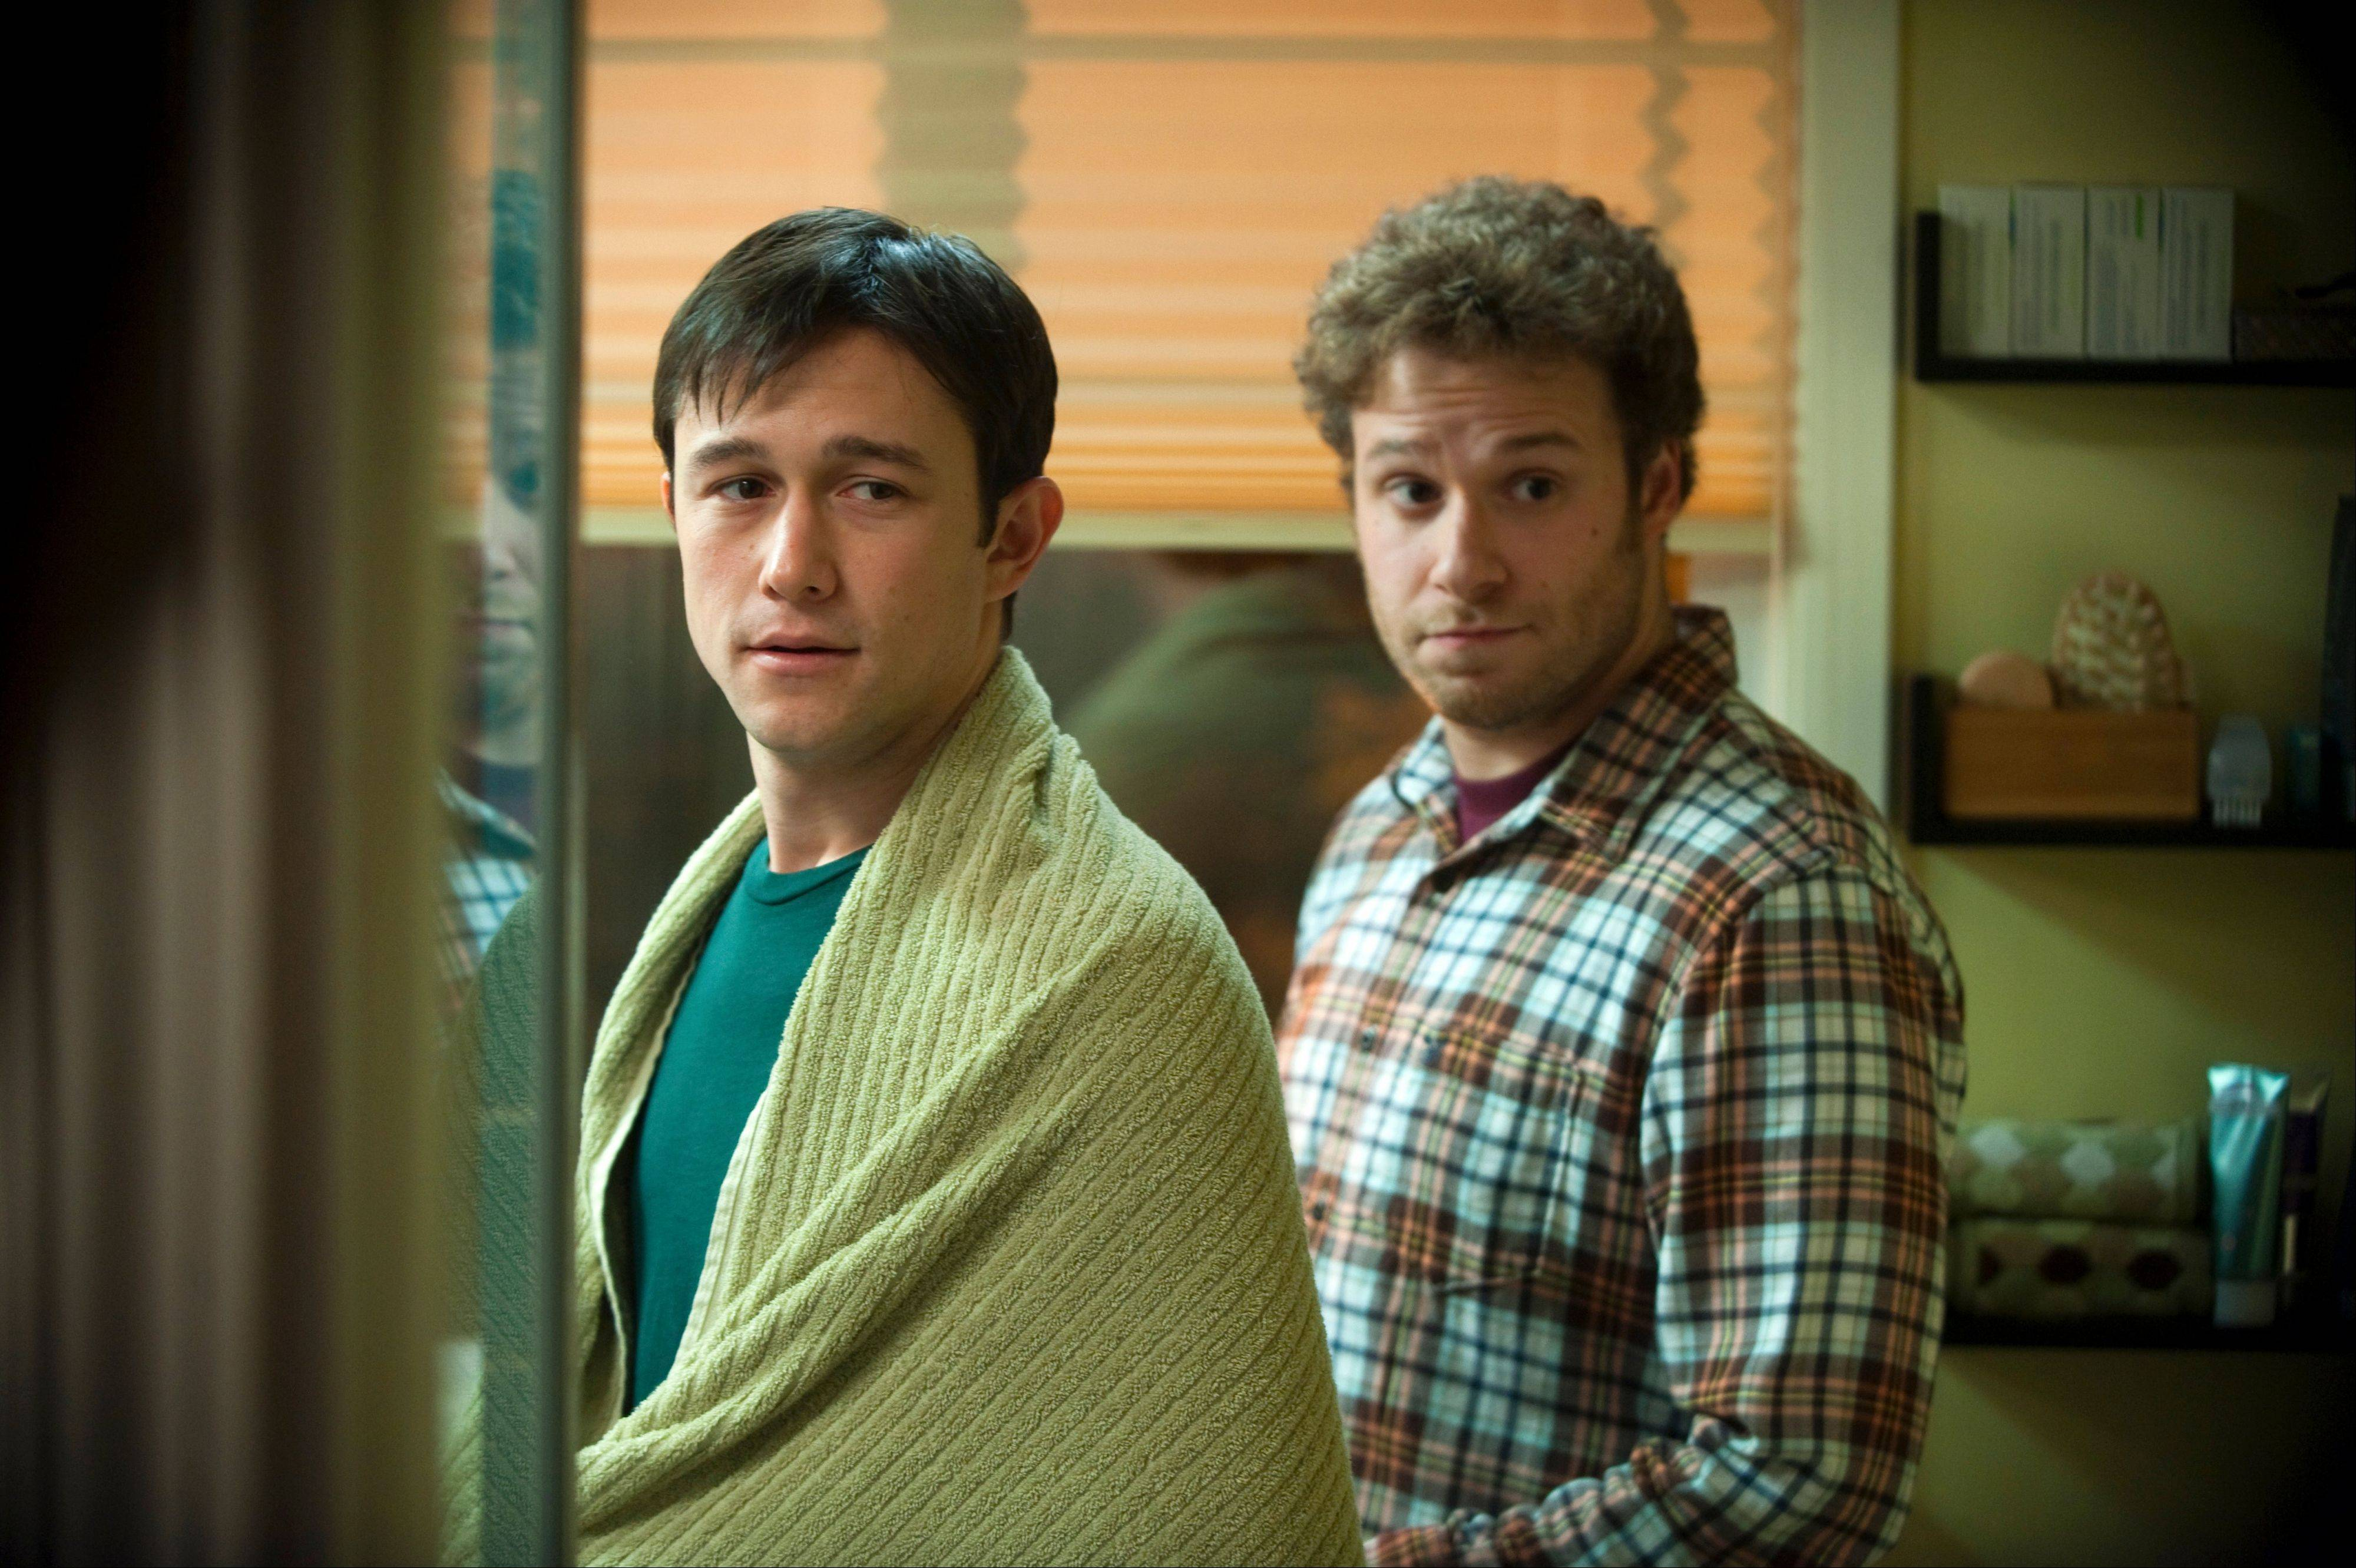 "Cancer patient Adam (Joseph Gordon-Levitt, left) deals with his diagnosis with support from his friend Kyle (Seth Rogen) in ""50/50,"" now on DVD."